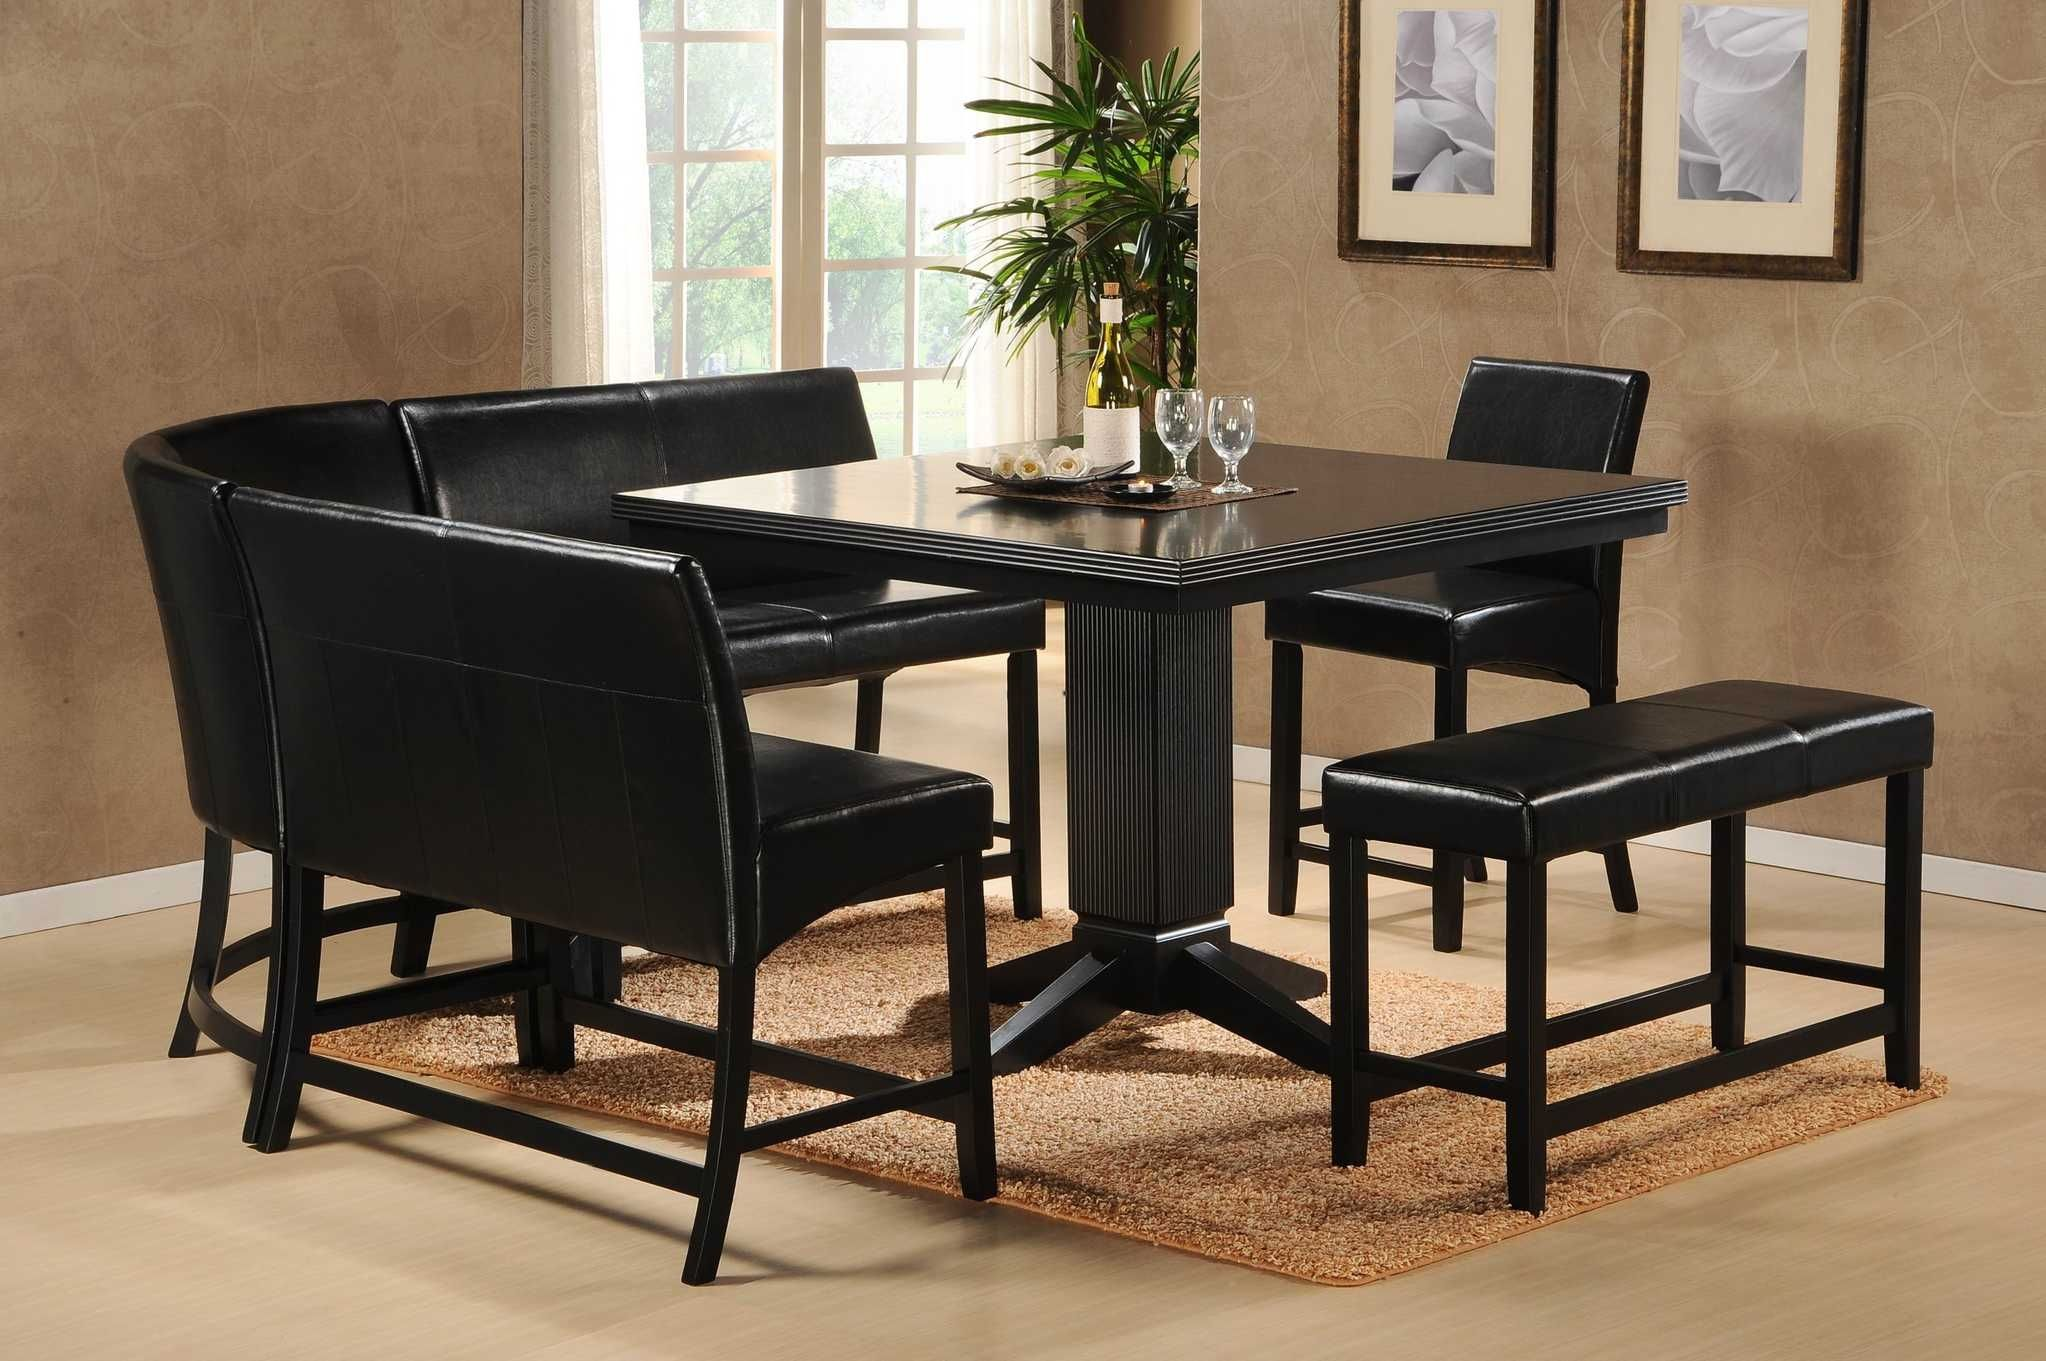 Inexpensive Kitchen Table Sets Flooring Options Vinyl Excellent Kitchentable Dining